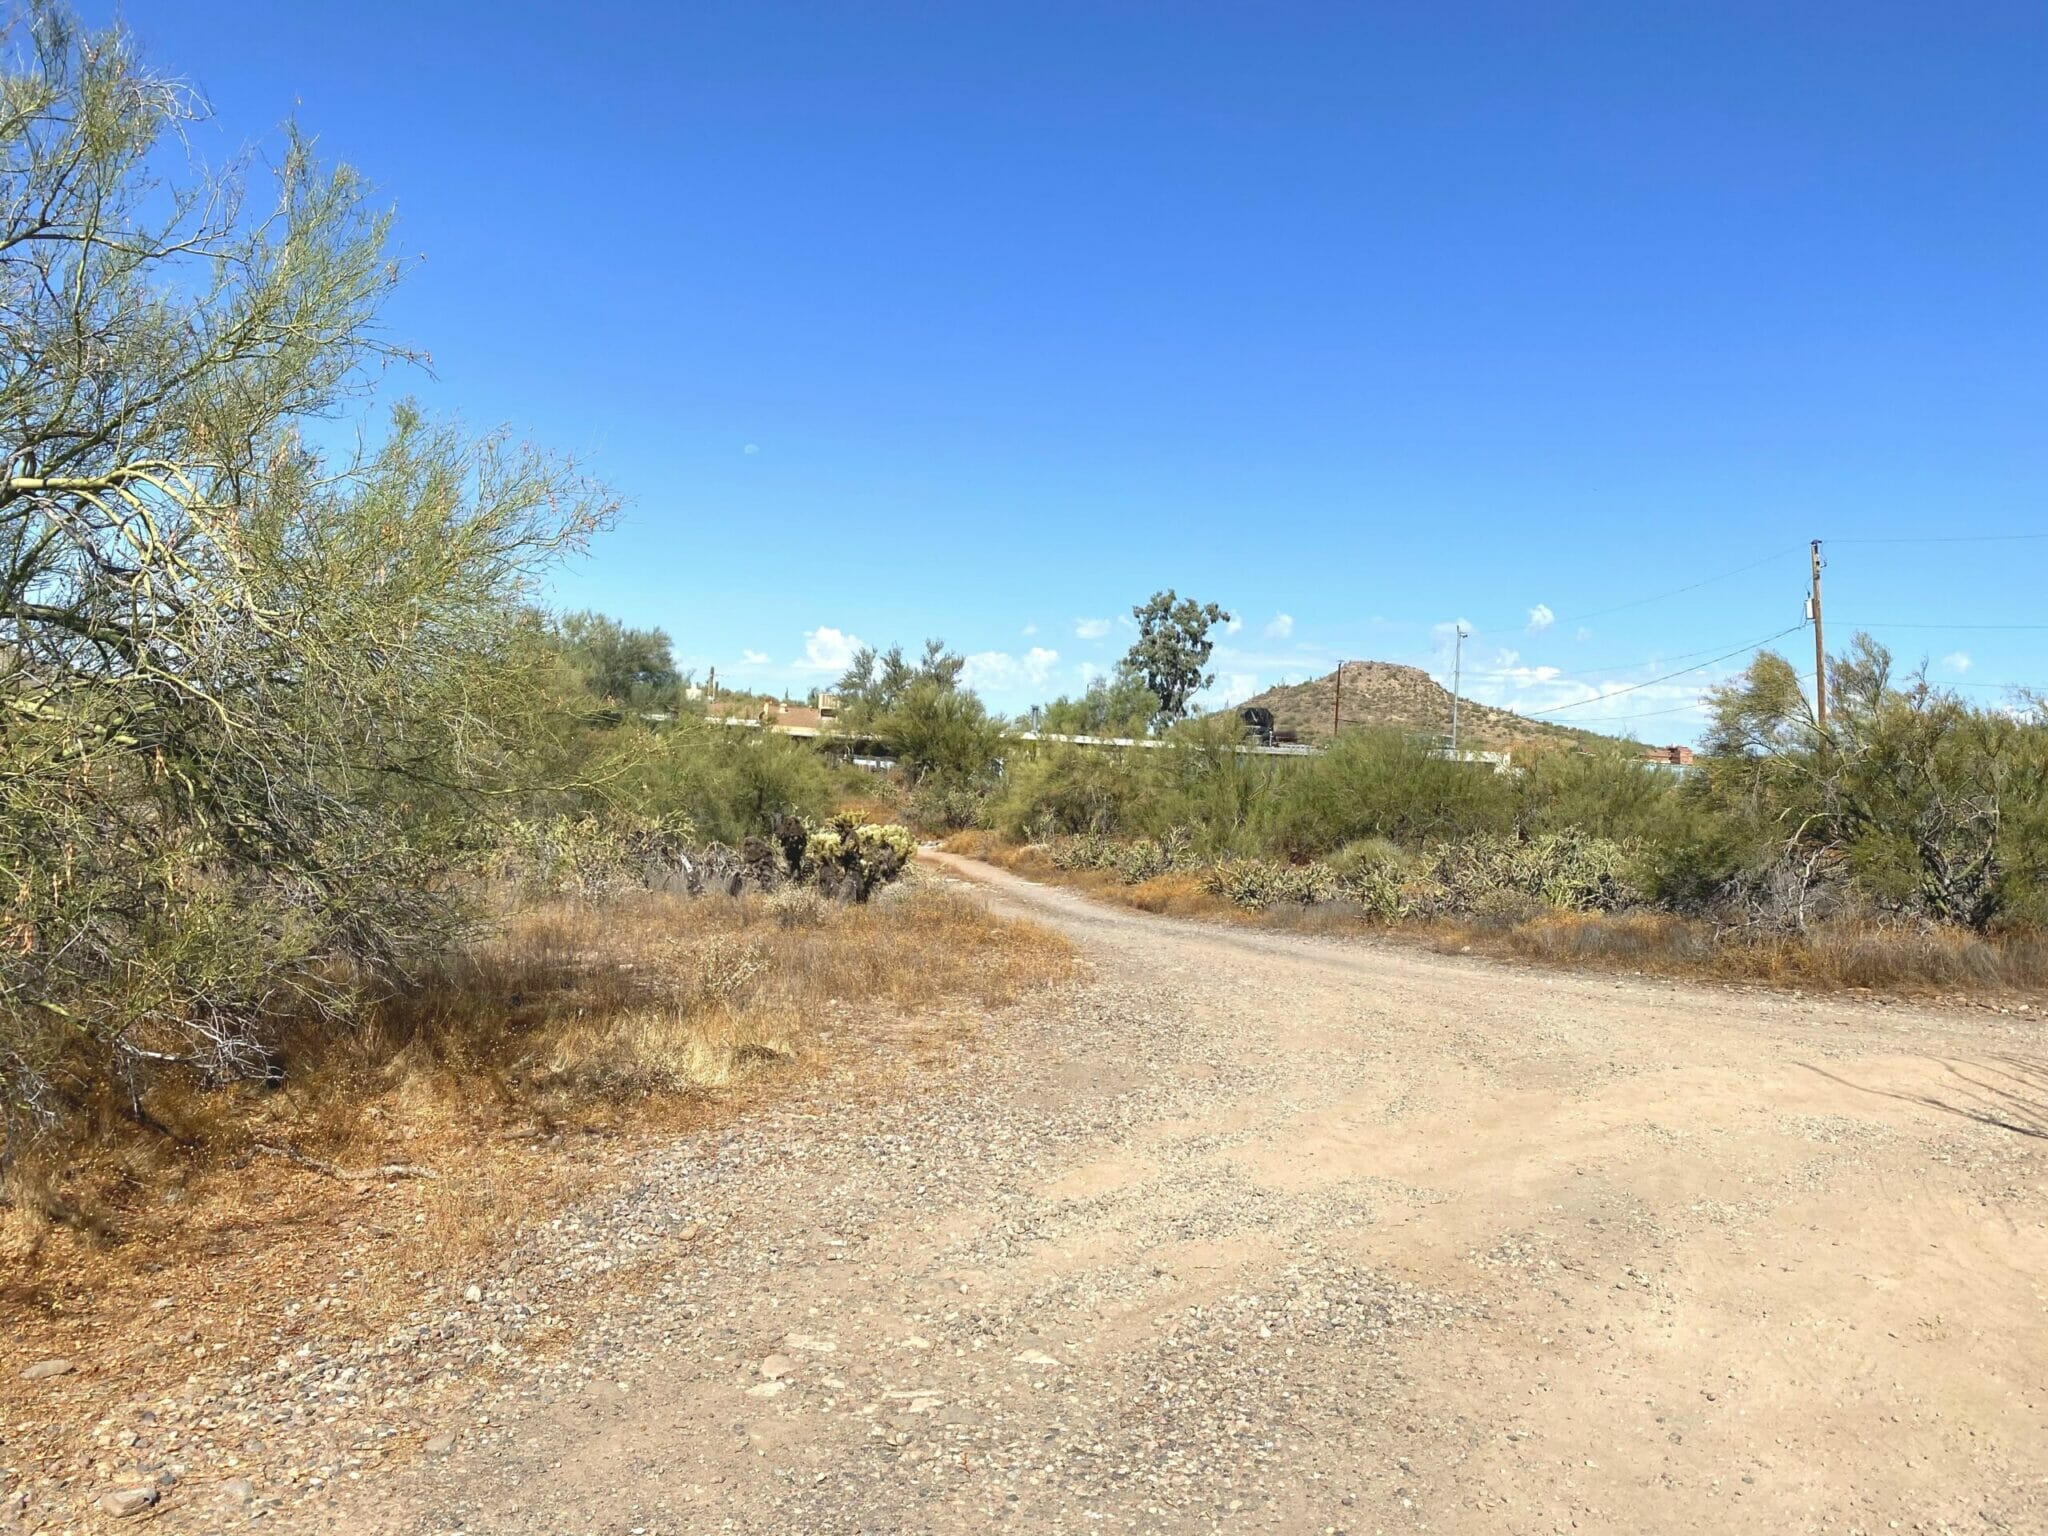 48407 N 15th Ave, New River, AZ 85087